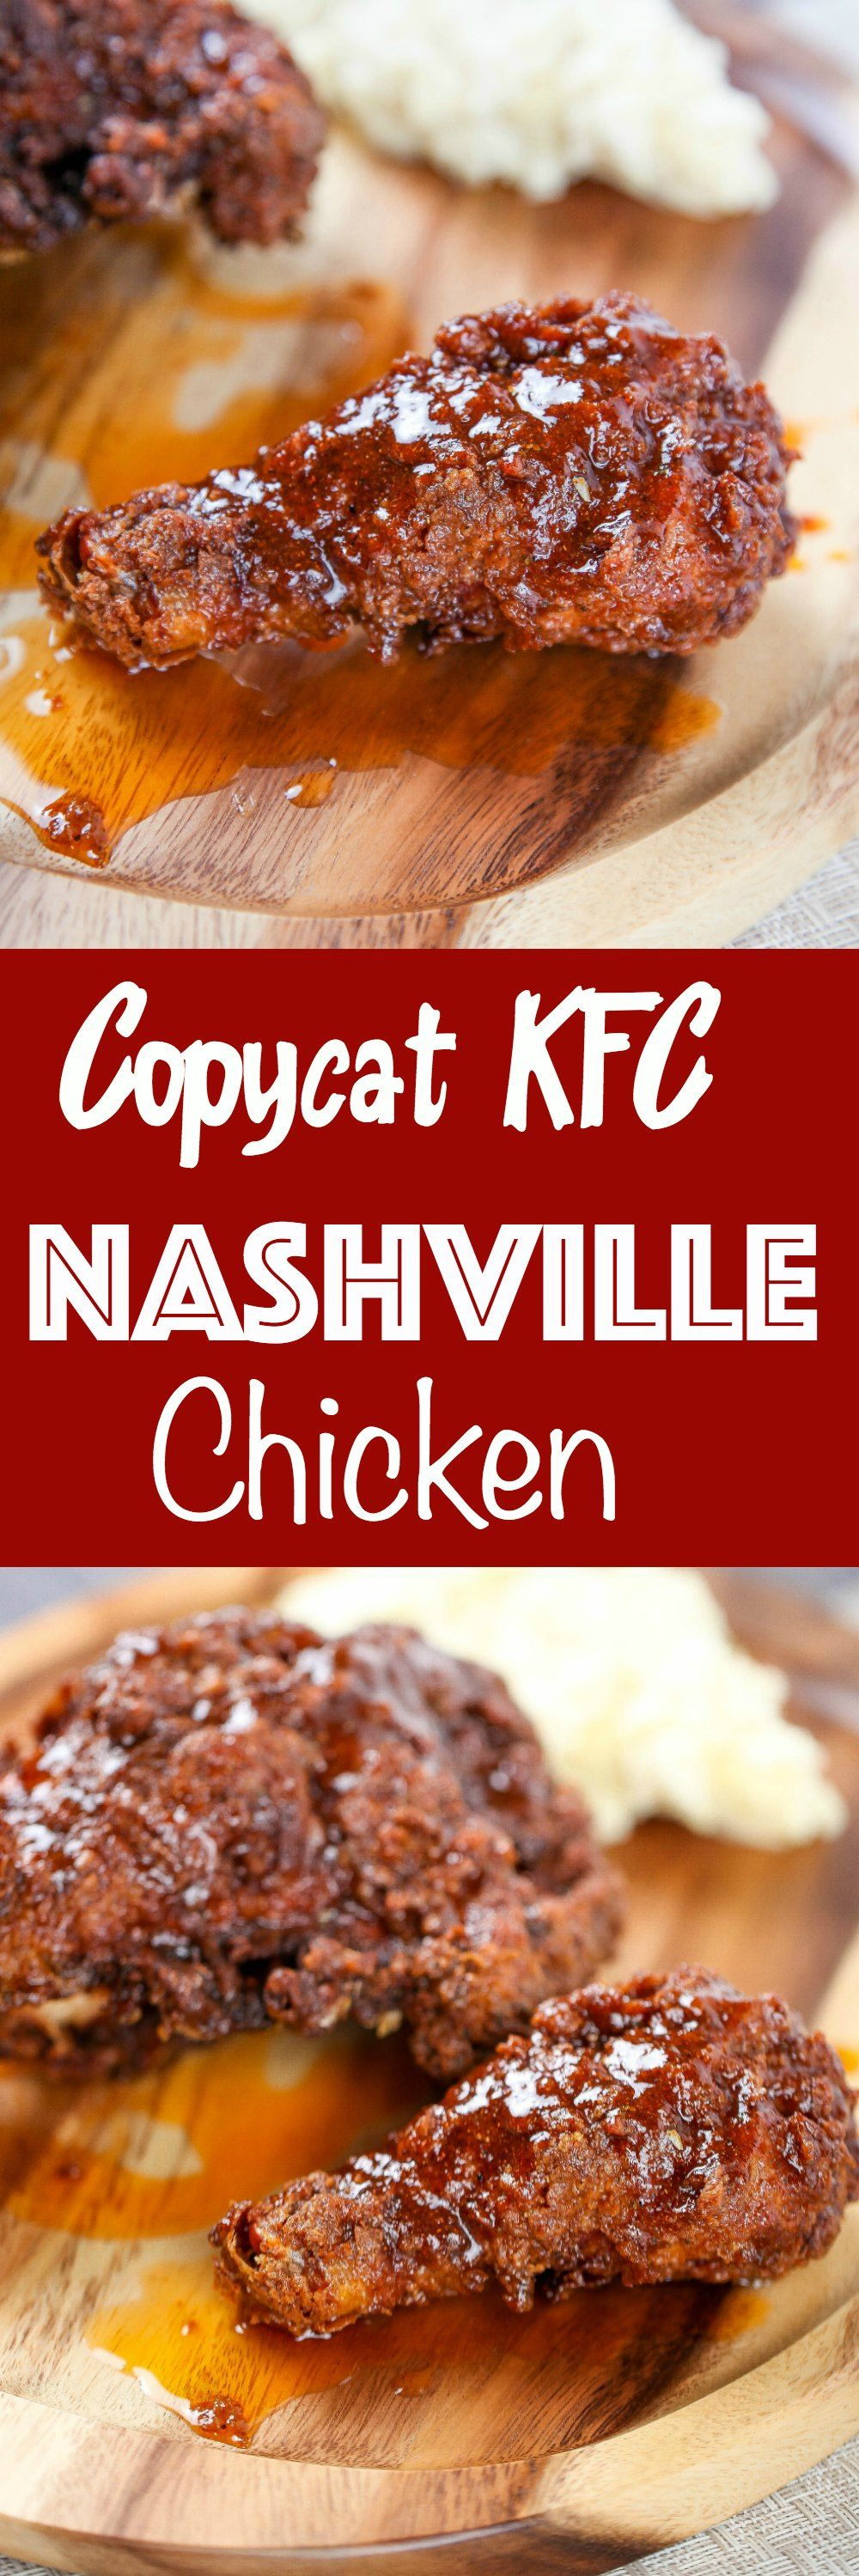 Nashville Hot Chicken KFC Copycat Ultra crispy fried